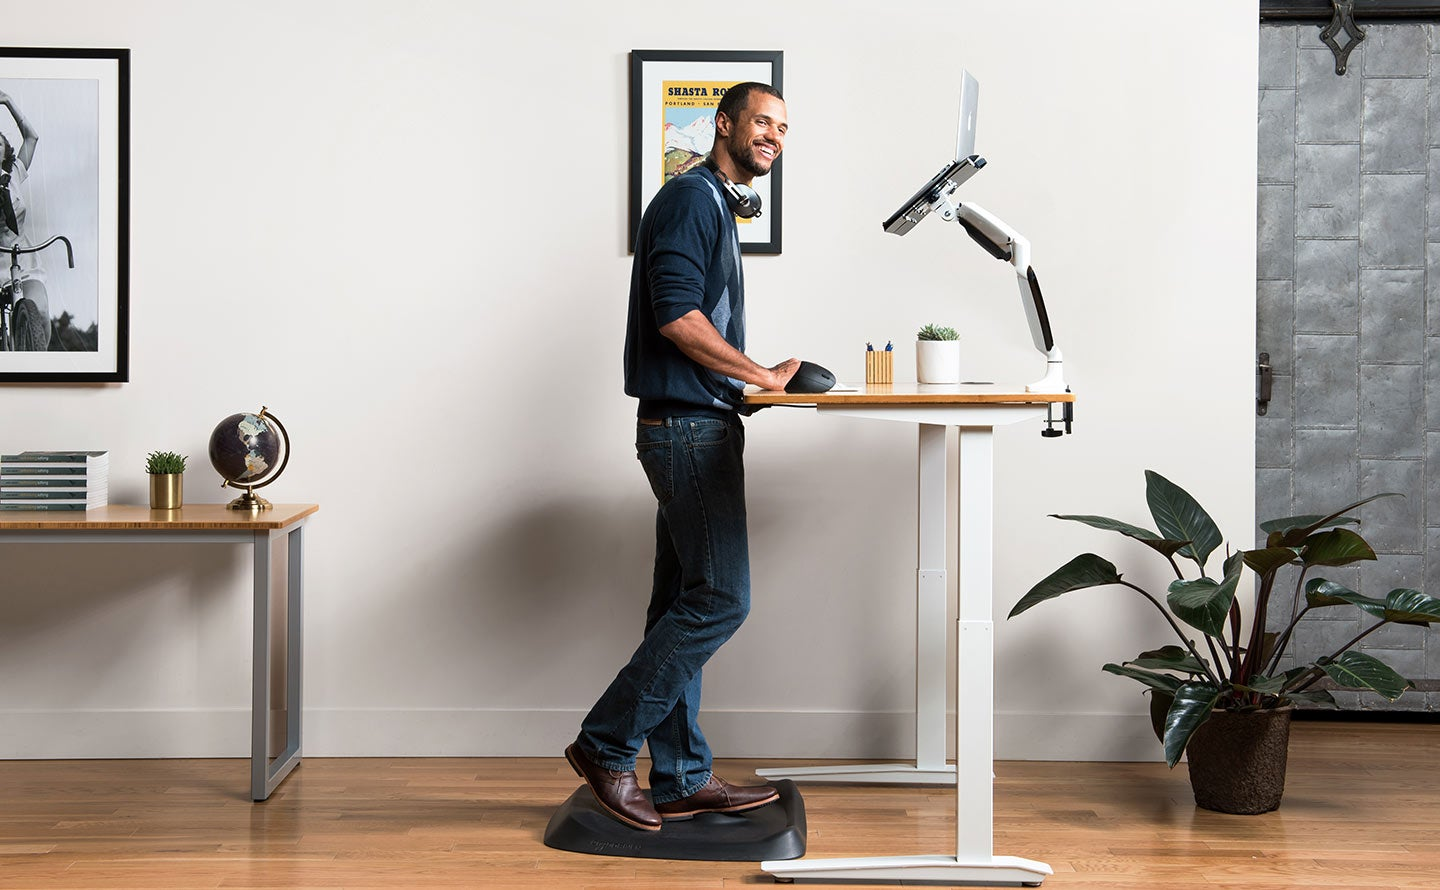 fully topo mini and topo anti fatigue mats topo mini in use by man with jarvis desk lifestyle photo